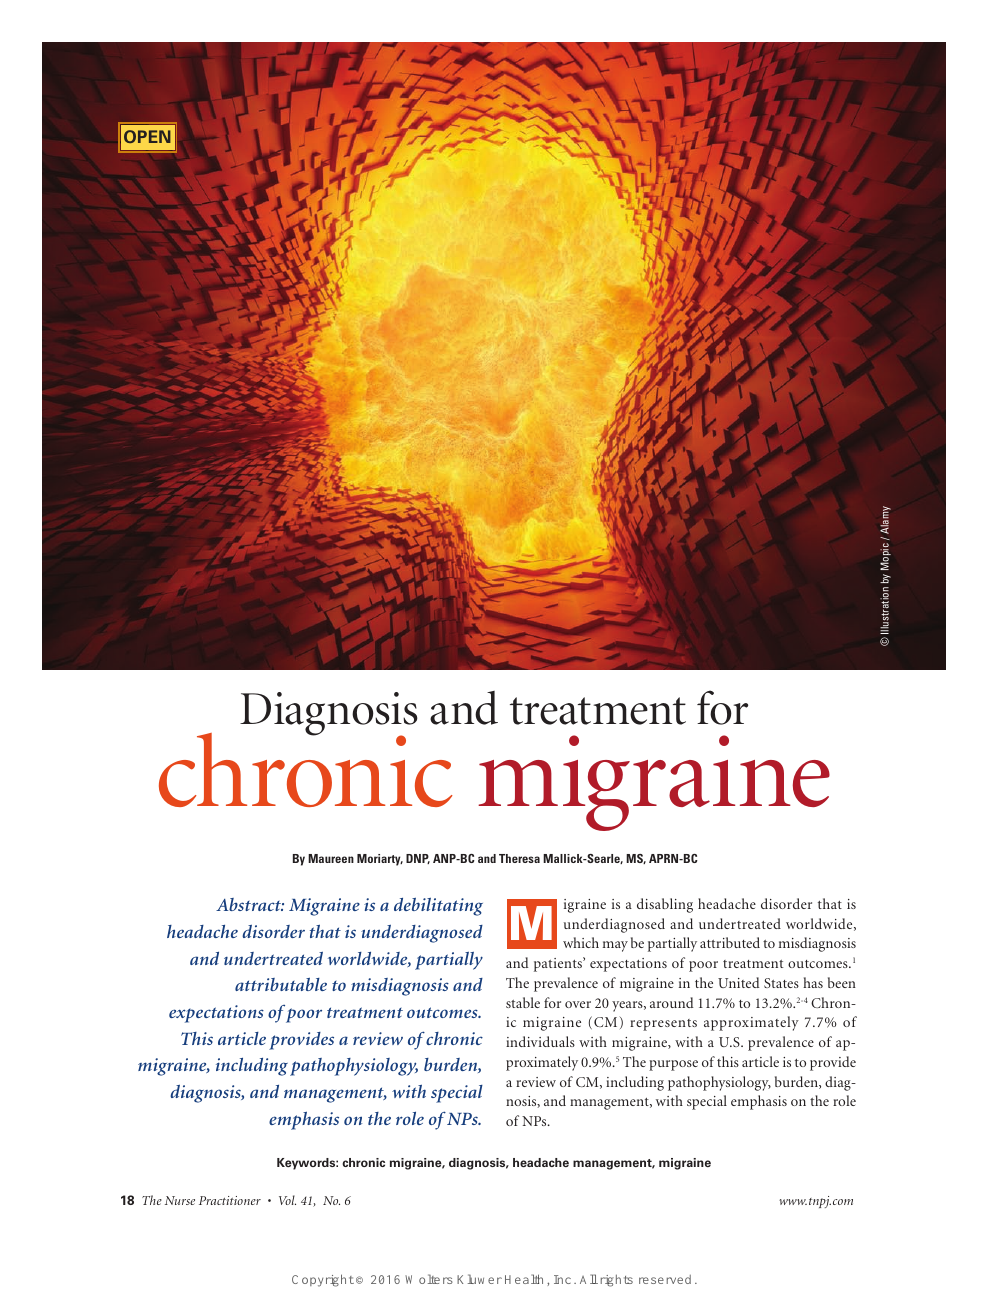 Diagnosis and treatment for chronic migraine – topic of